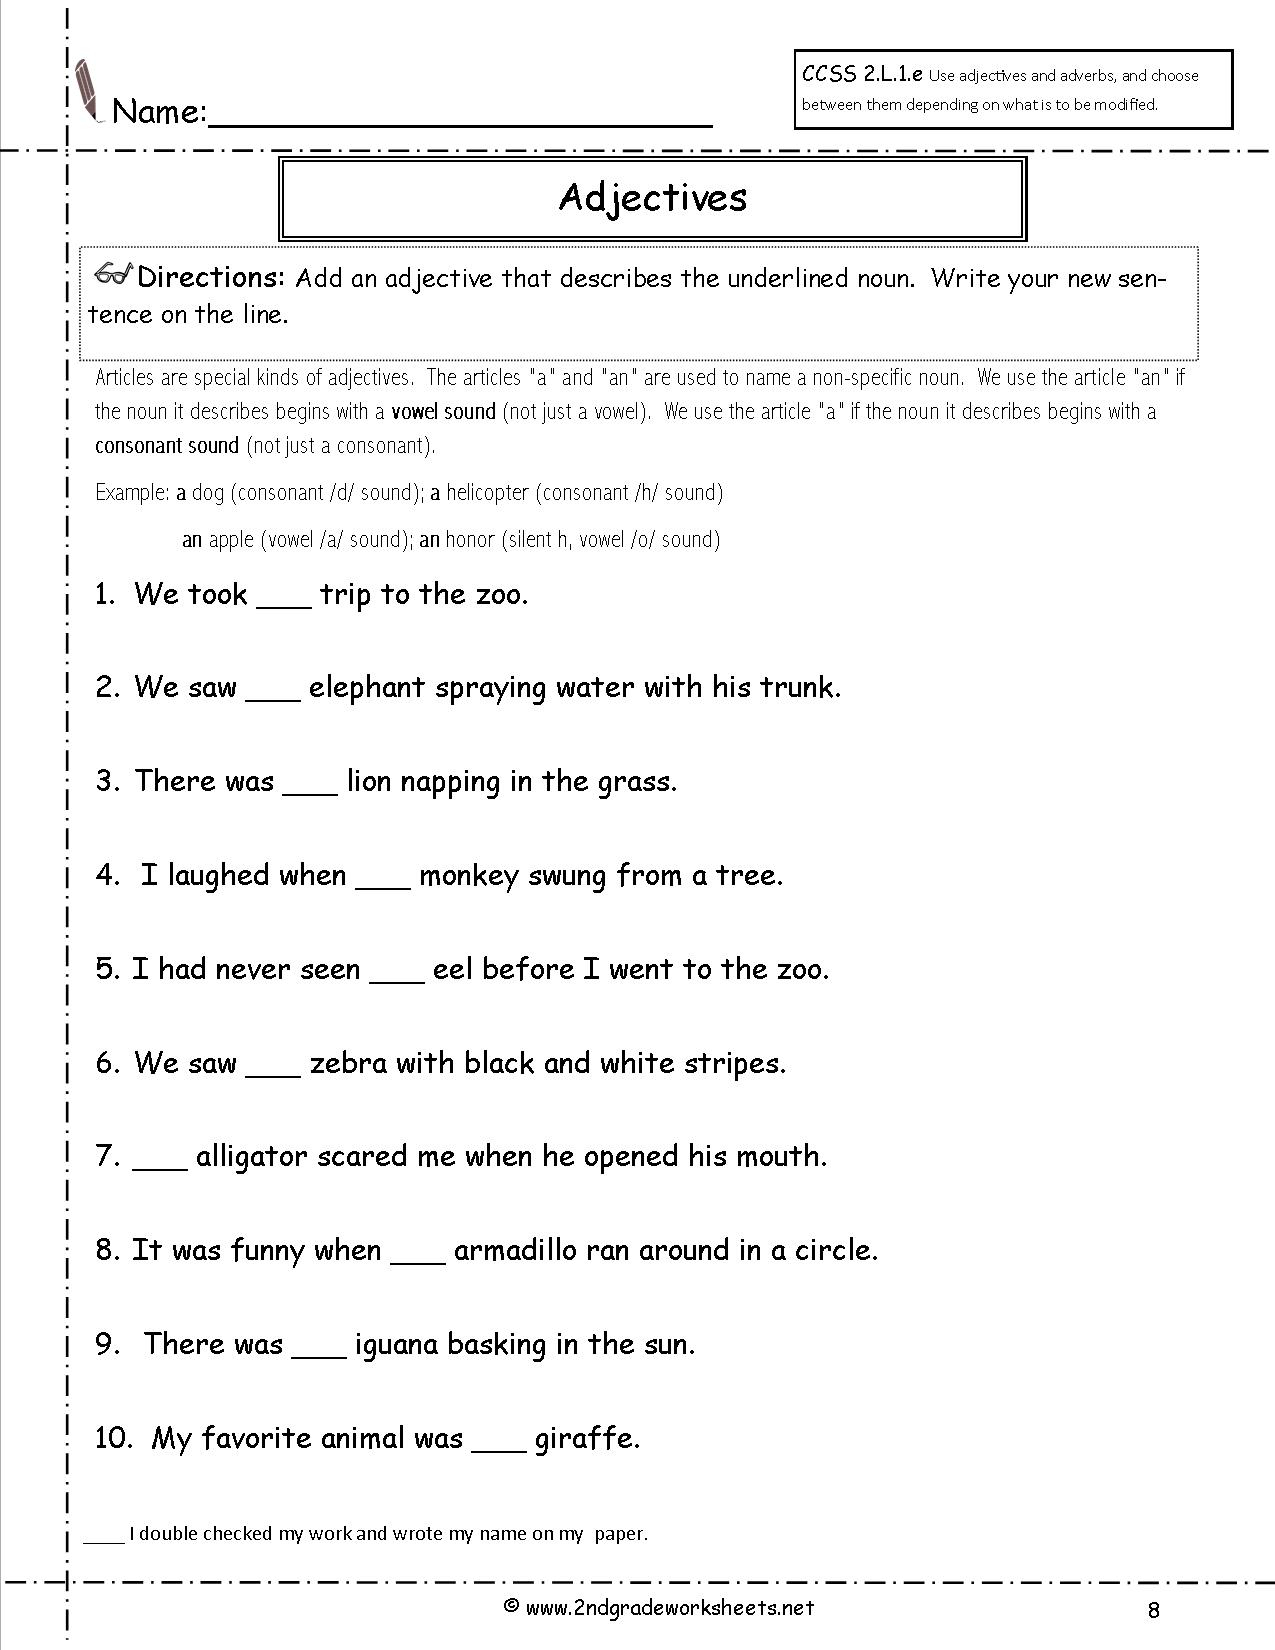 Free Language/grammar Worksheets And Printouts | Printable Grammar Worksheets